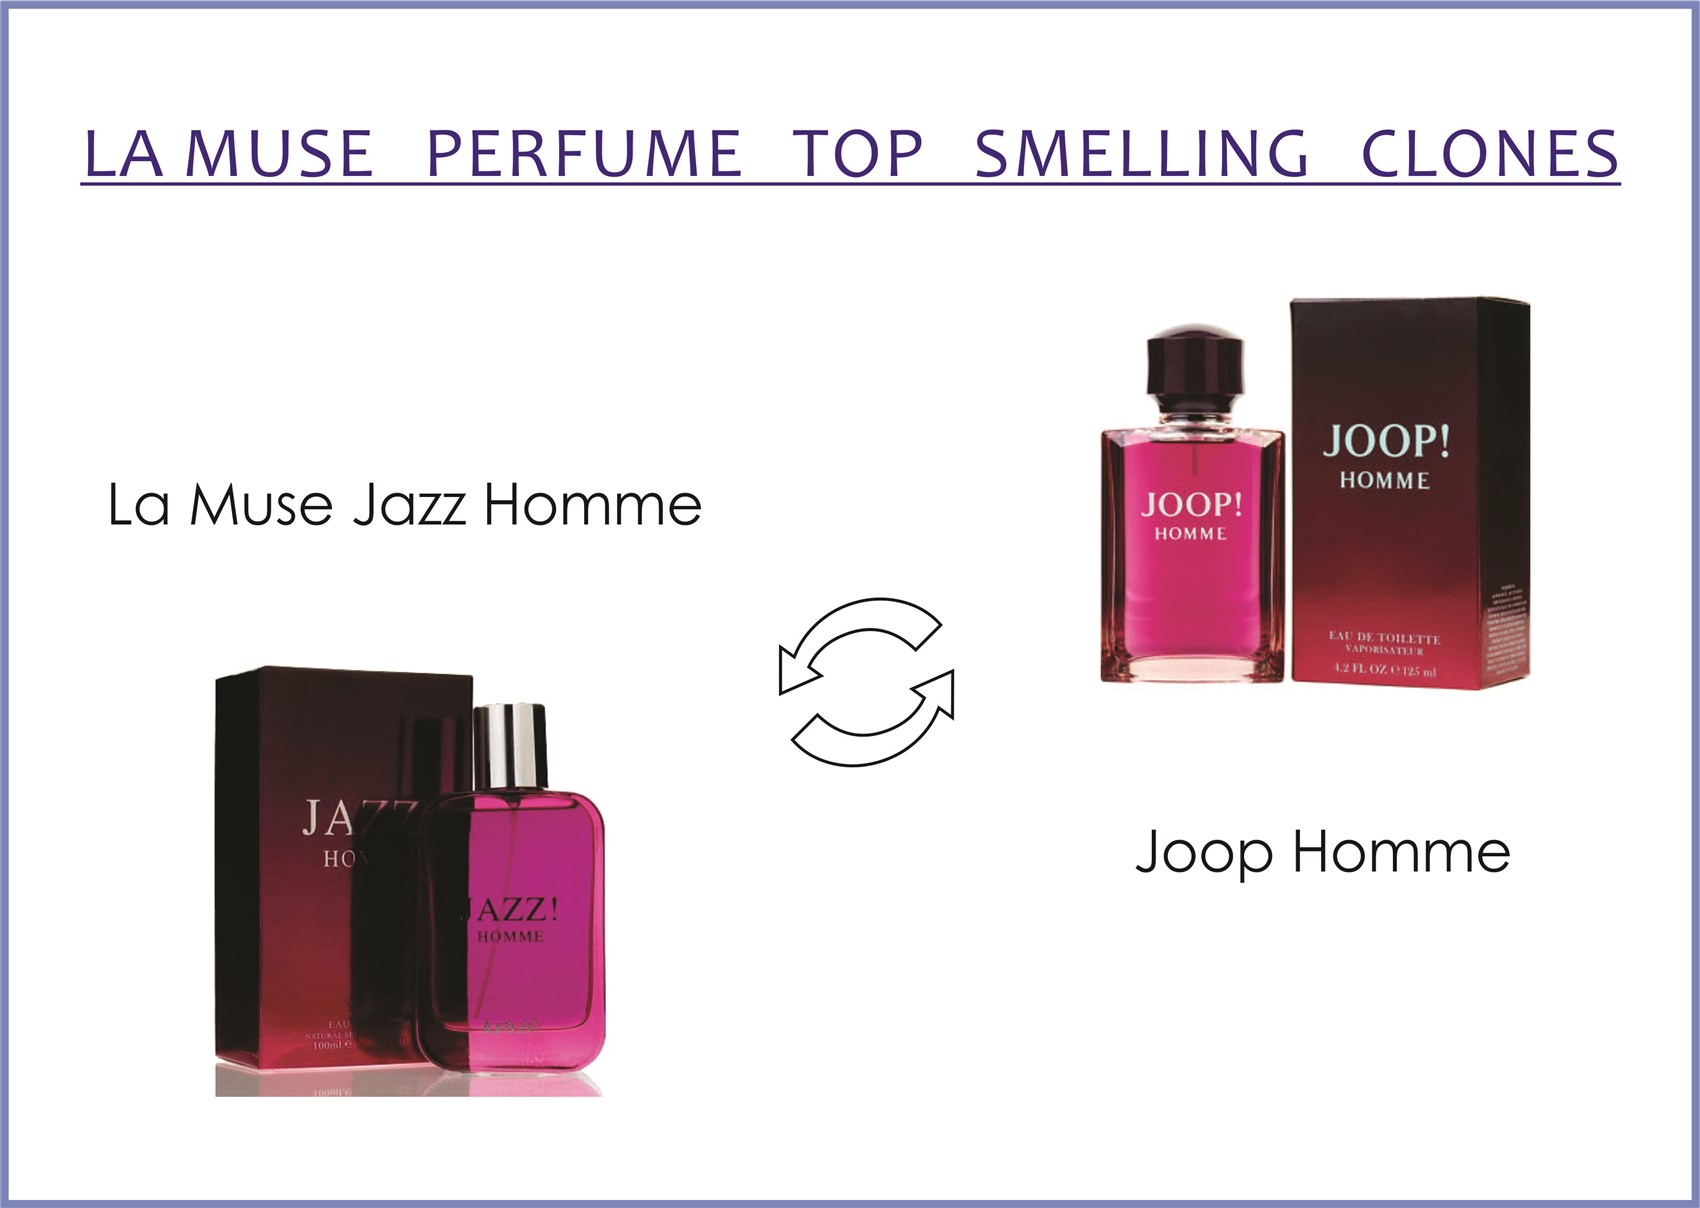 la-muse-perfumes-joop-homme-perfume-for-men-125-ml-edt